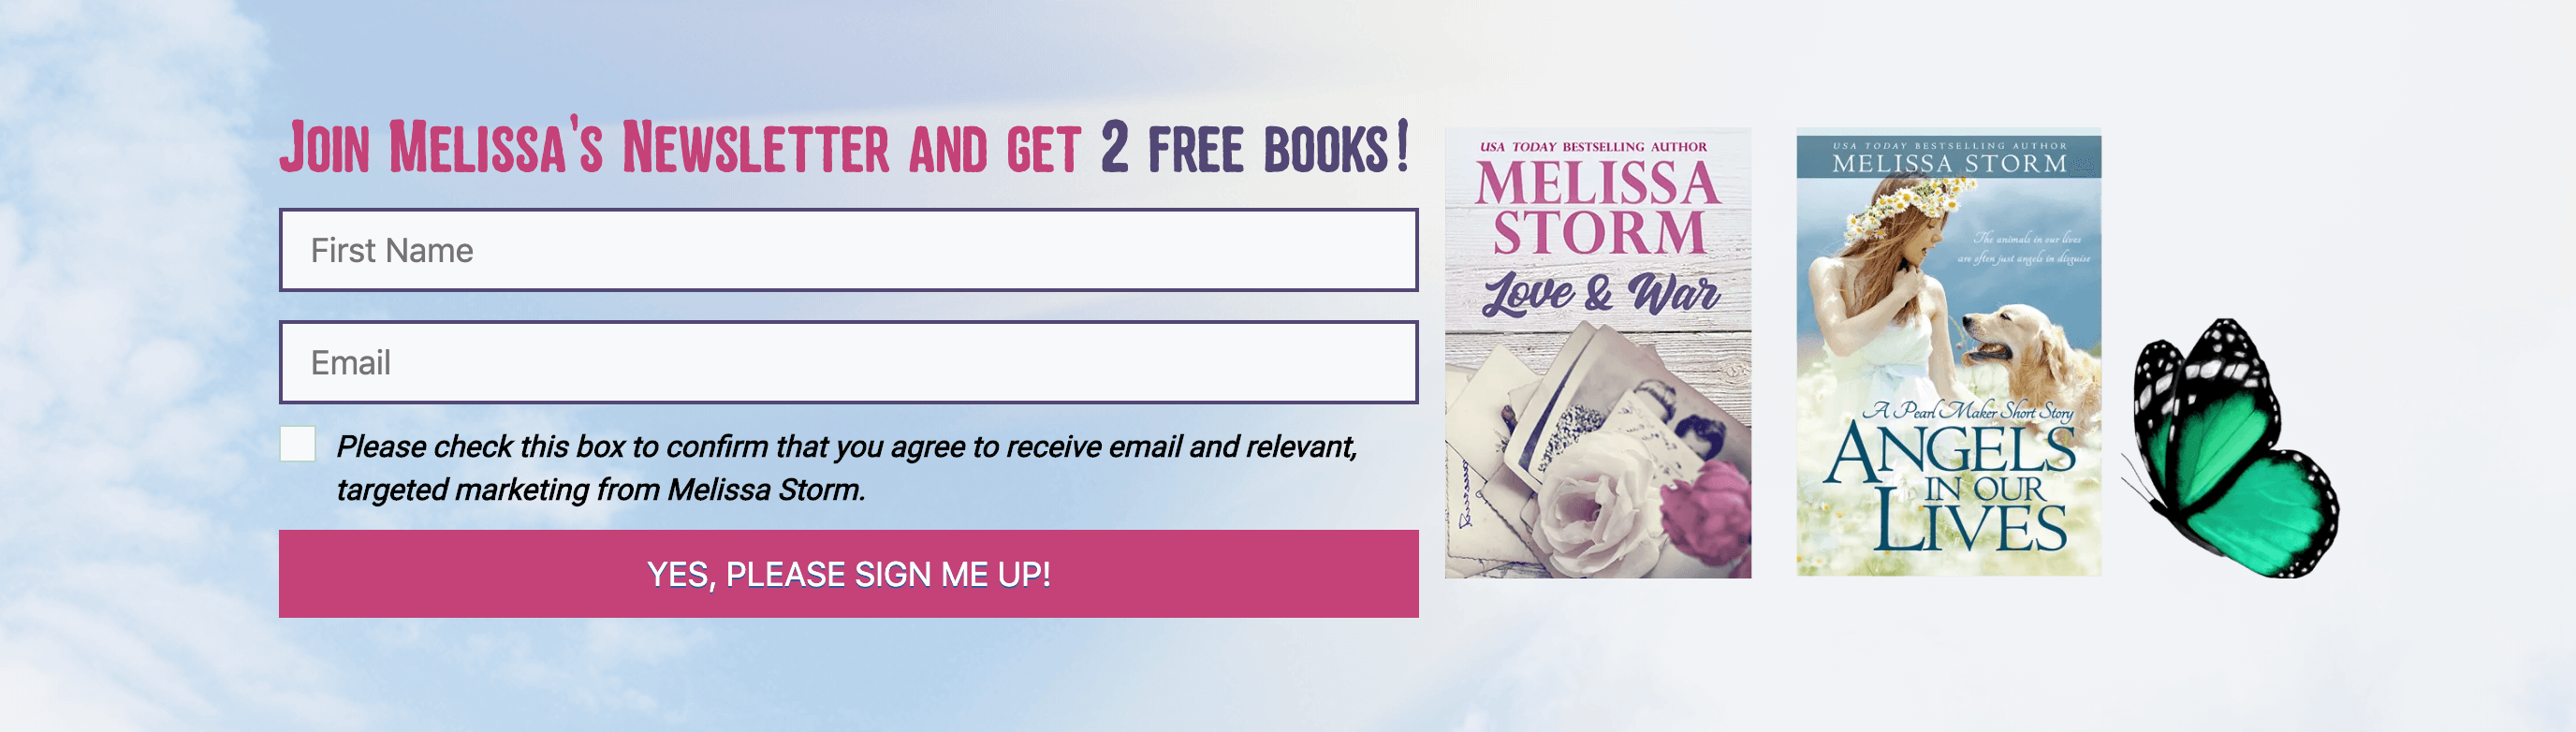 Melissa Storm free book signup